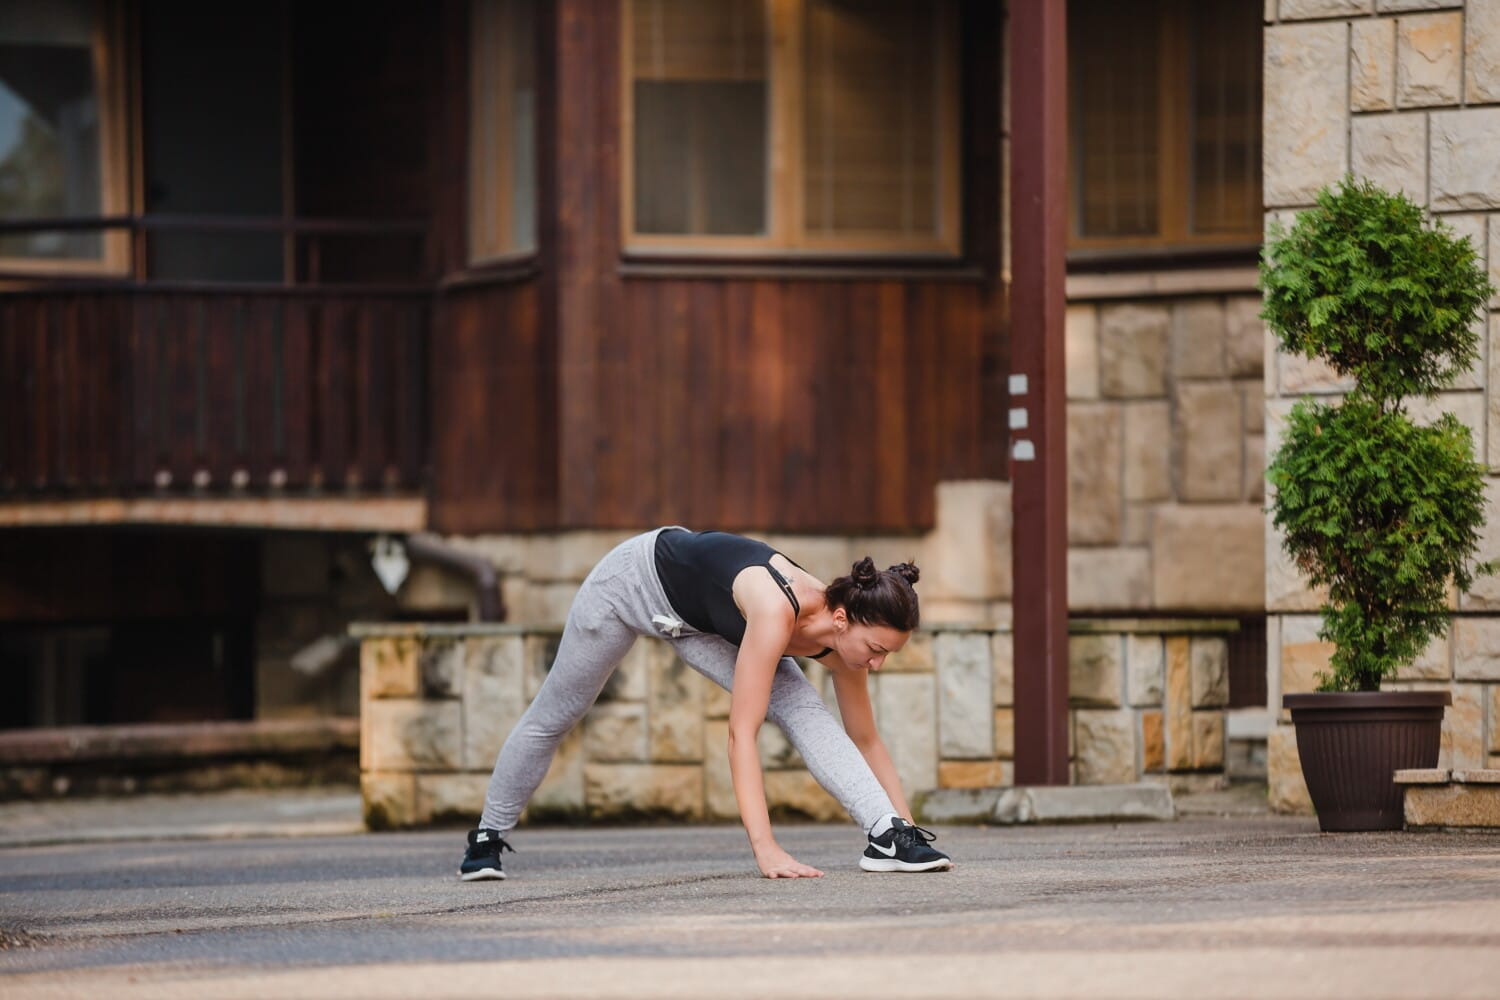 young woman, athletic, fitness, exercise, motion, urban area, sport, street, portrait, architecture